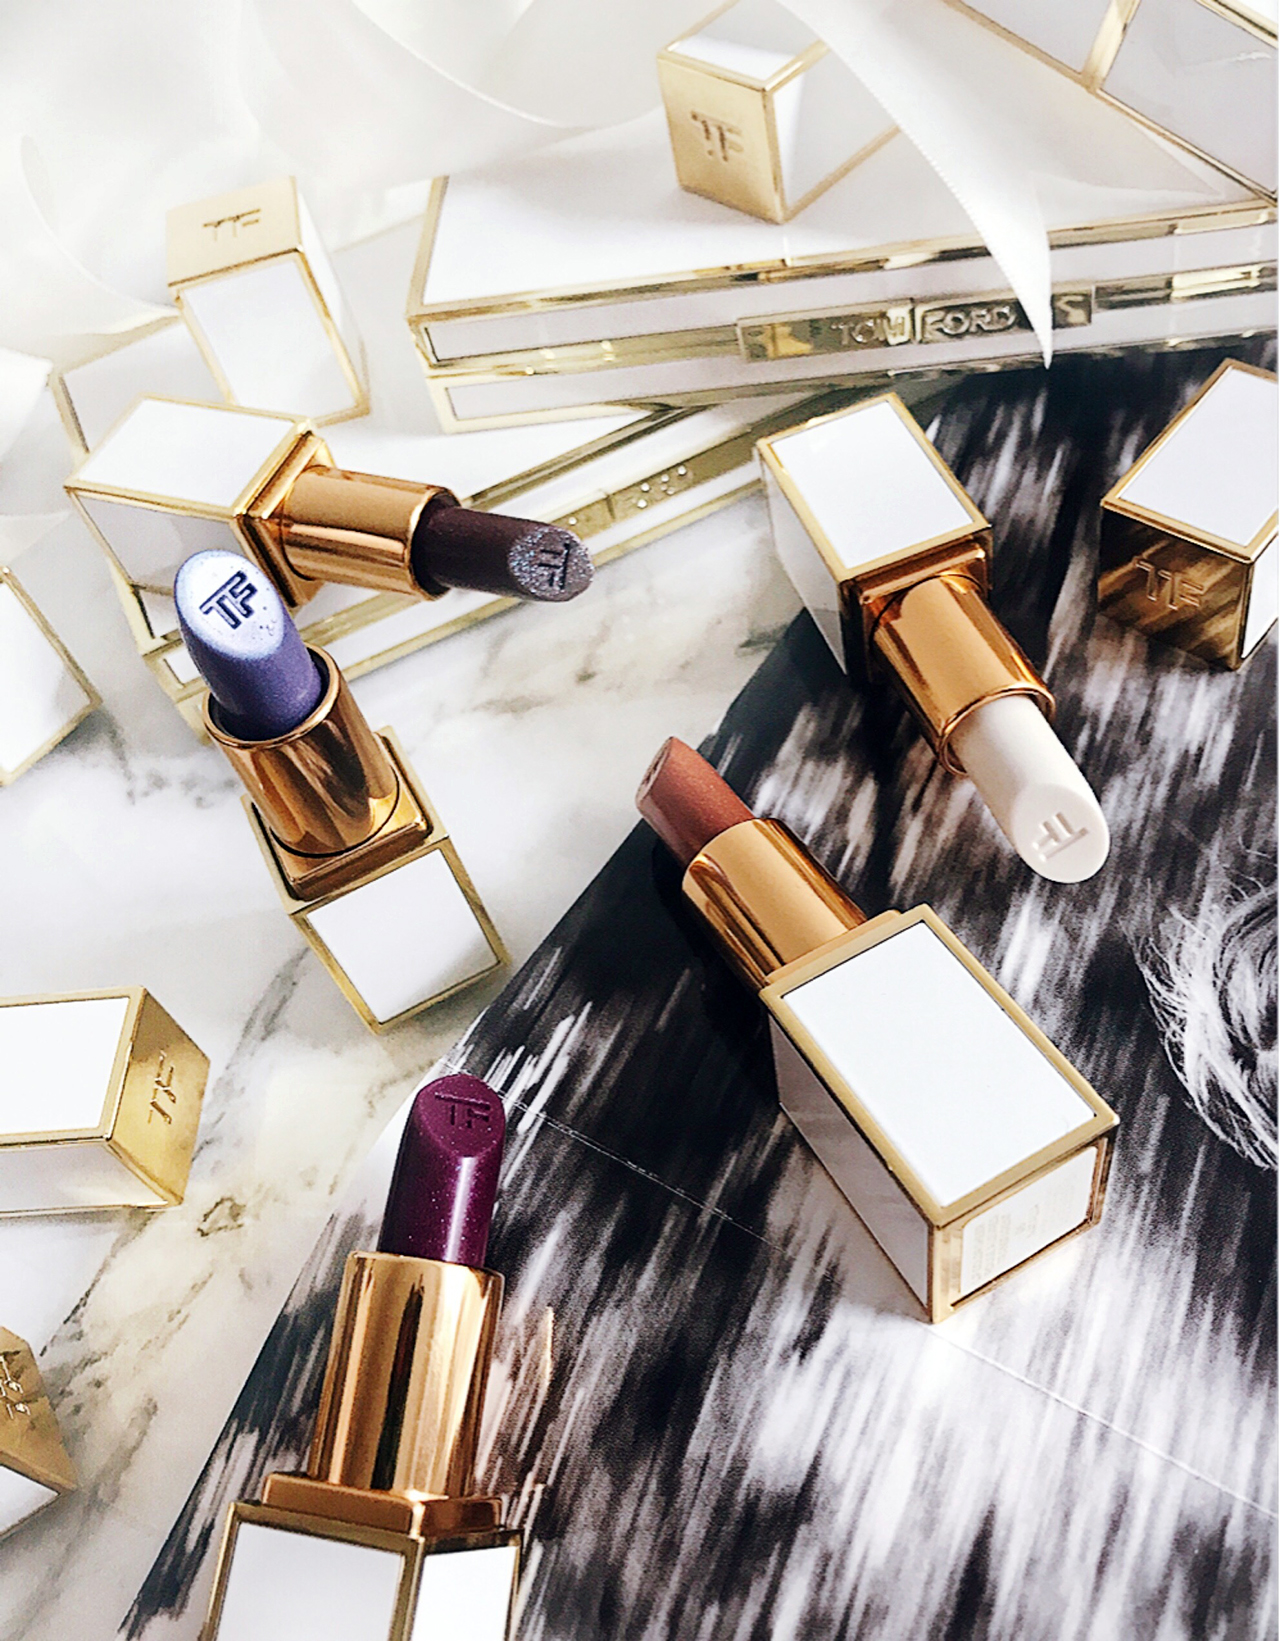 Tom Ford Boys and Girls Lip Color Lily, Isamaya, Nico, Georgie, Natalia